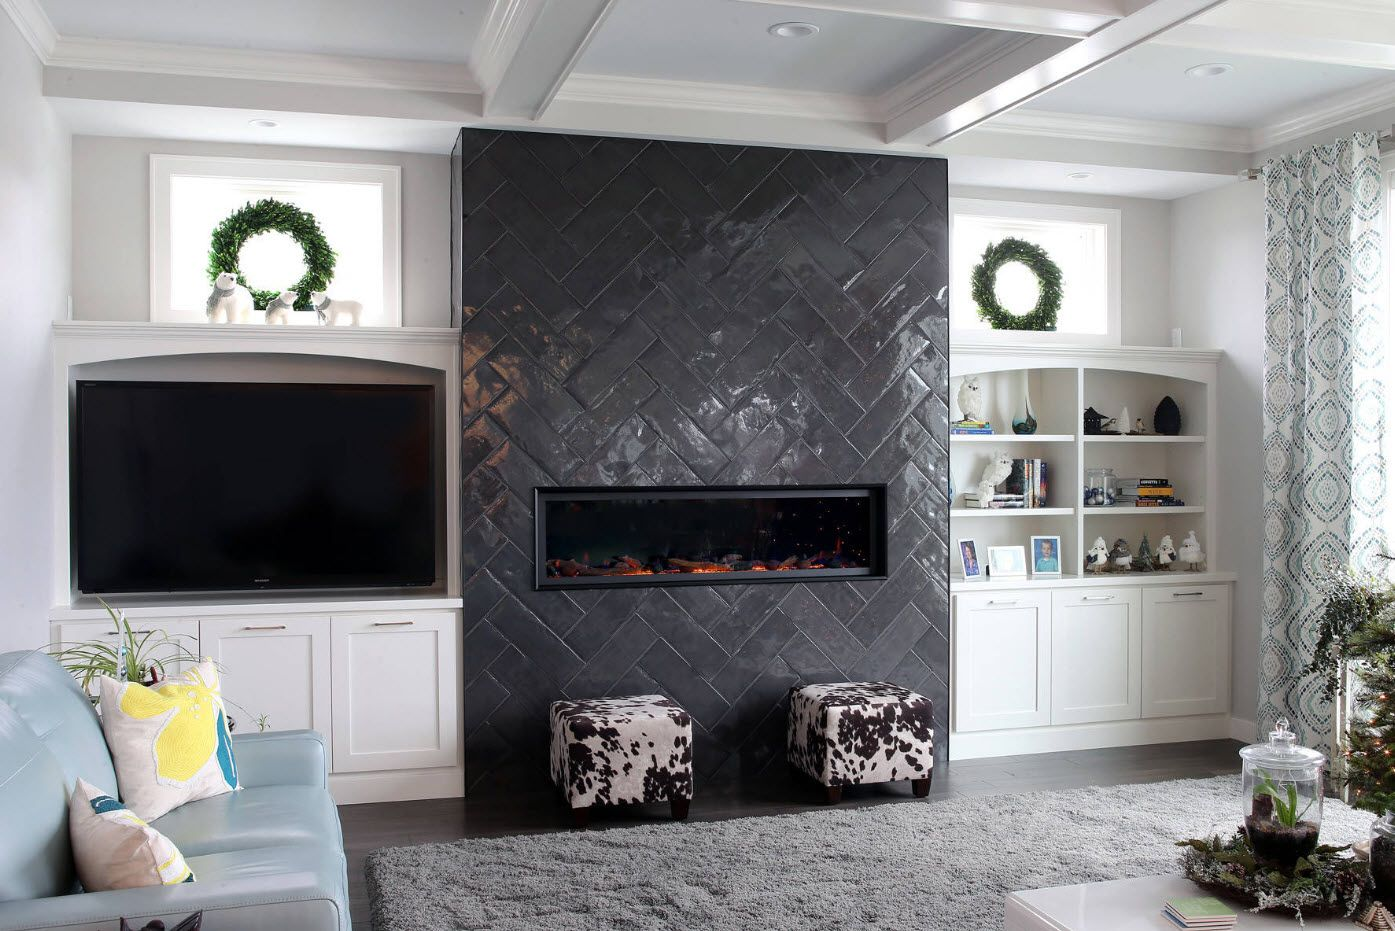 Artificial fireplace built-in to the dark panel at the accent wall